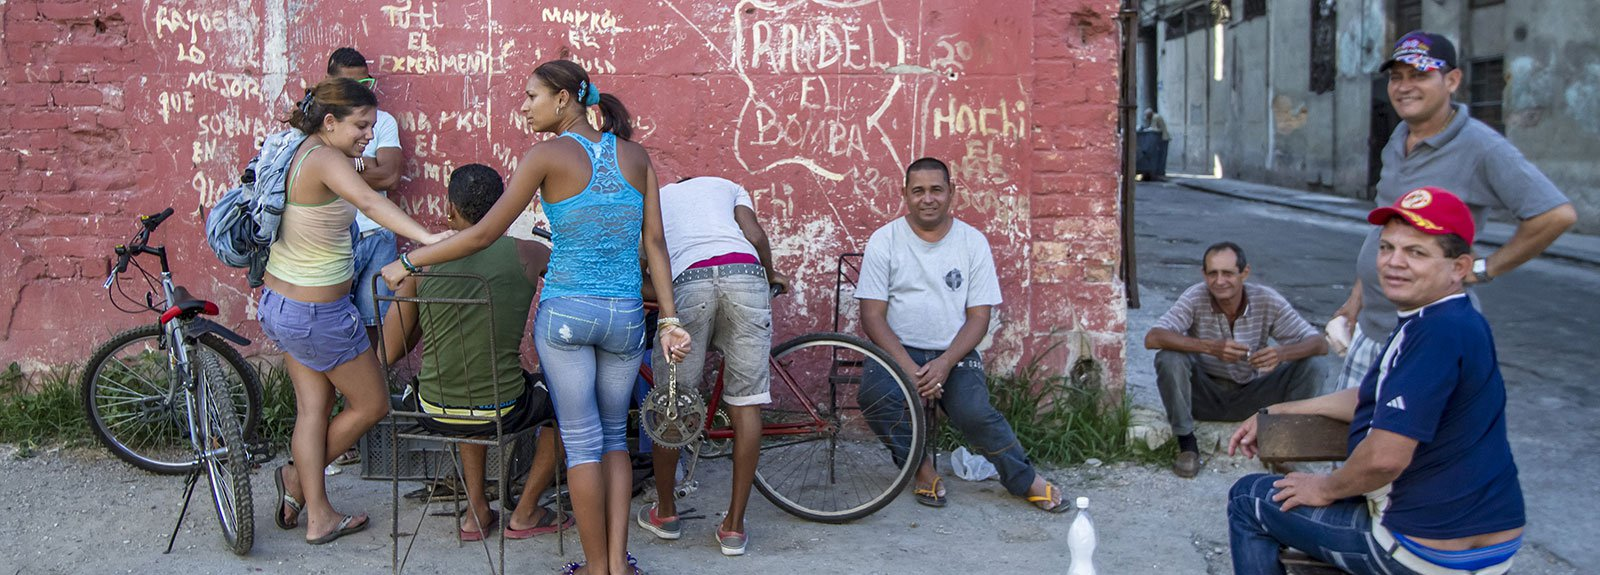 People gattered in a corner against a red wall with chairs and bicycles